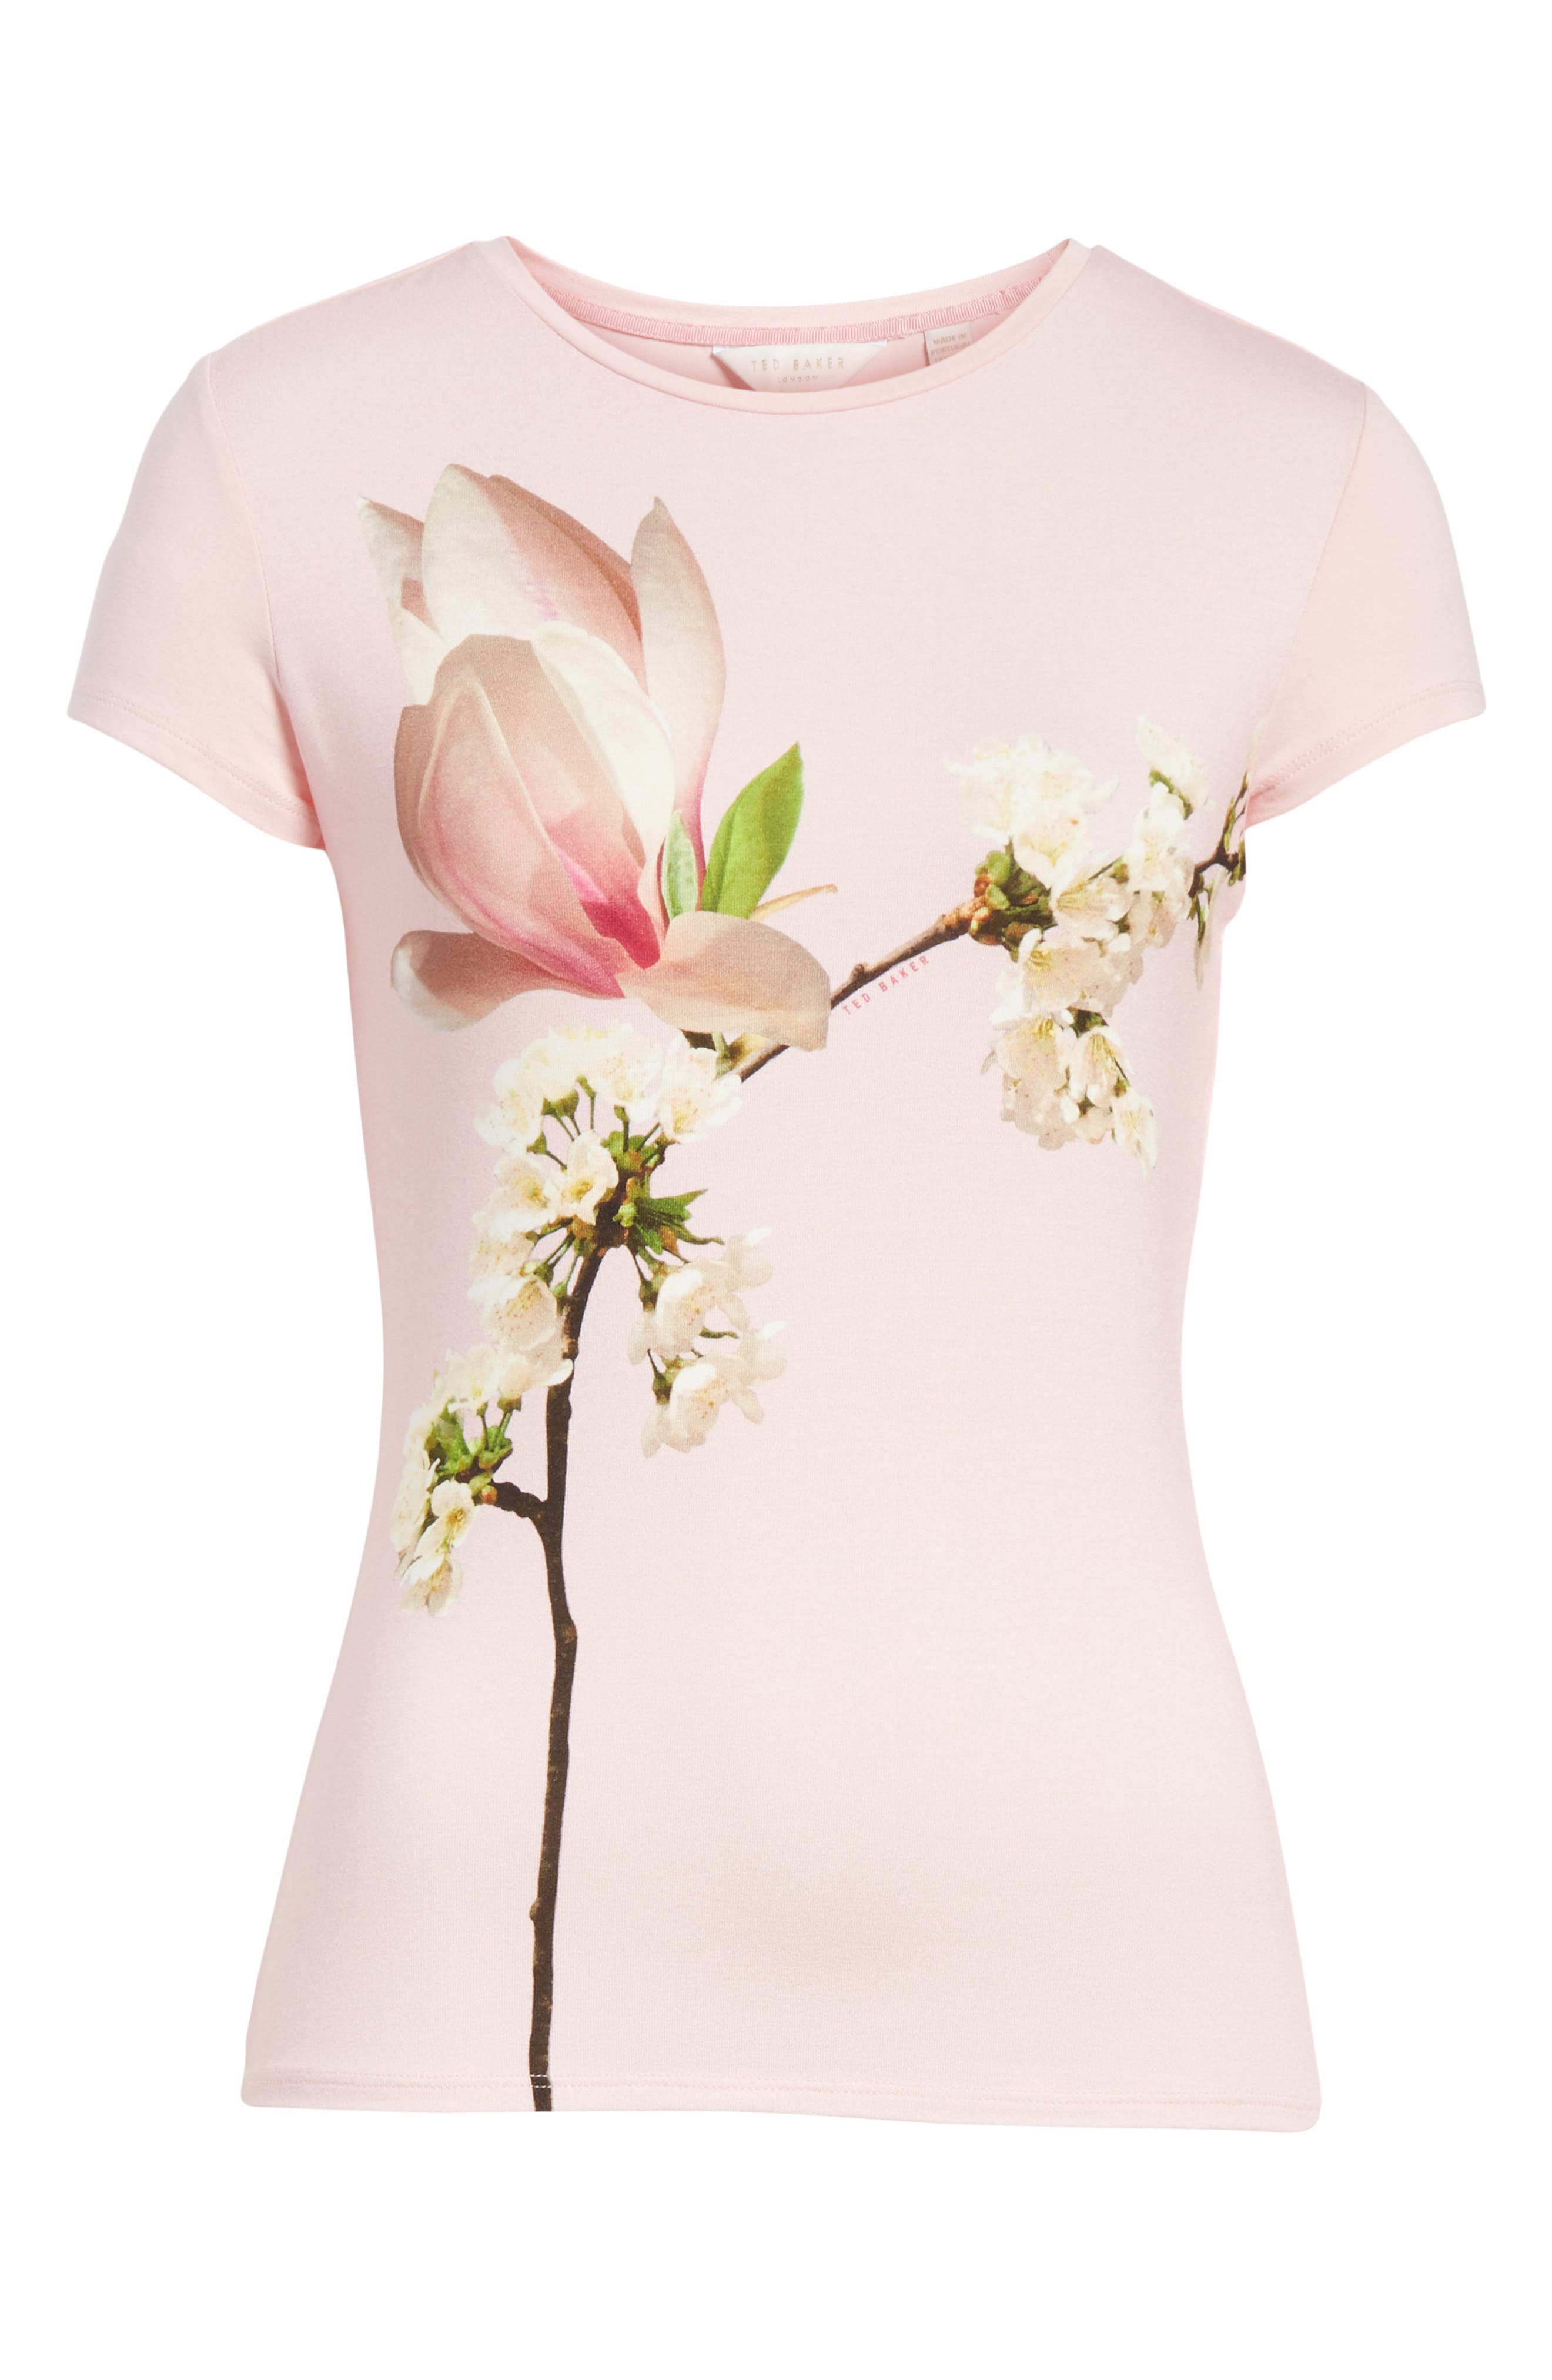 Ameliza Harmony Fitted Tee,                             Alternate thumbnail 6, color,                             Pale Pink